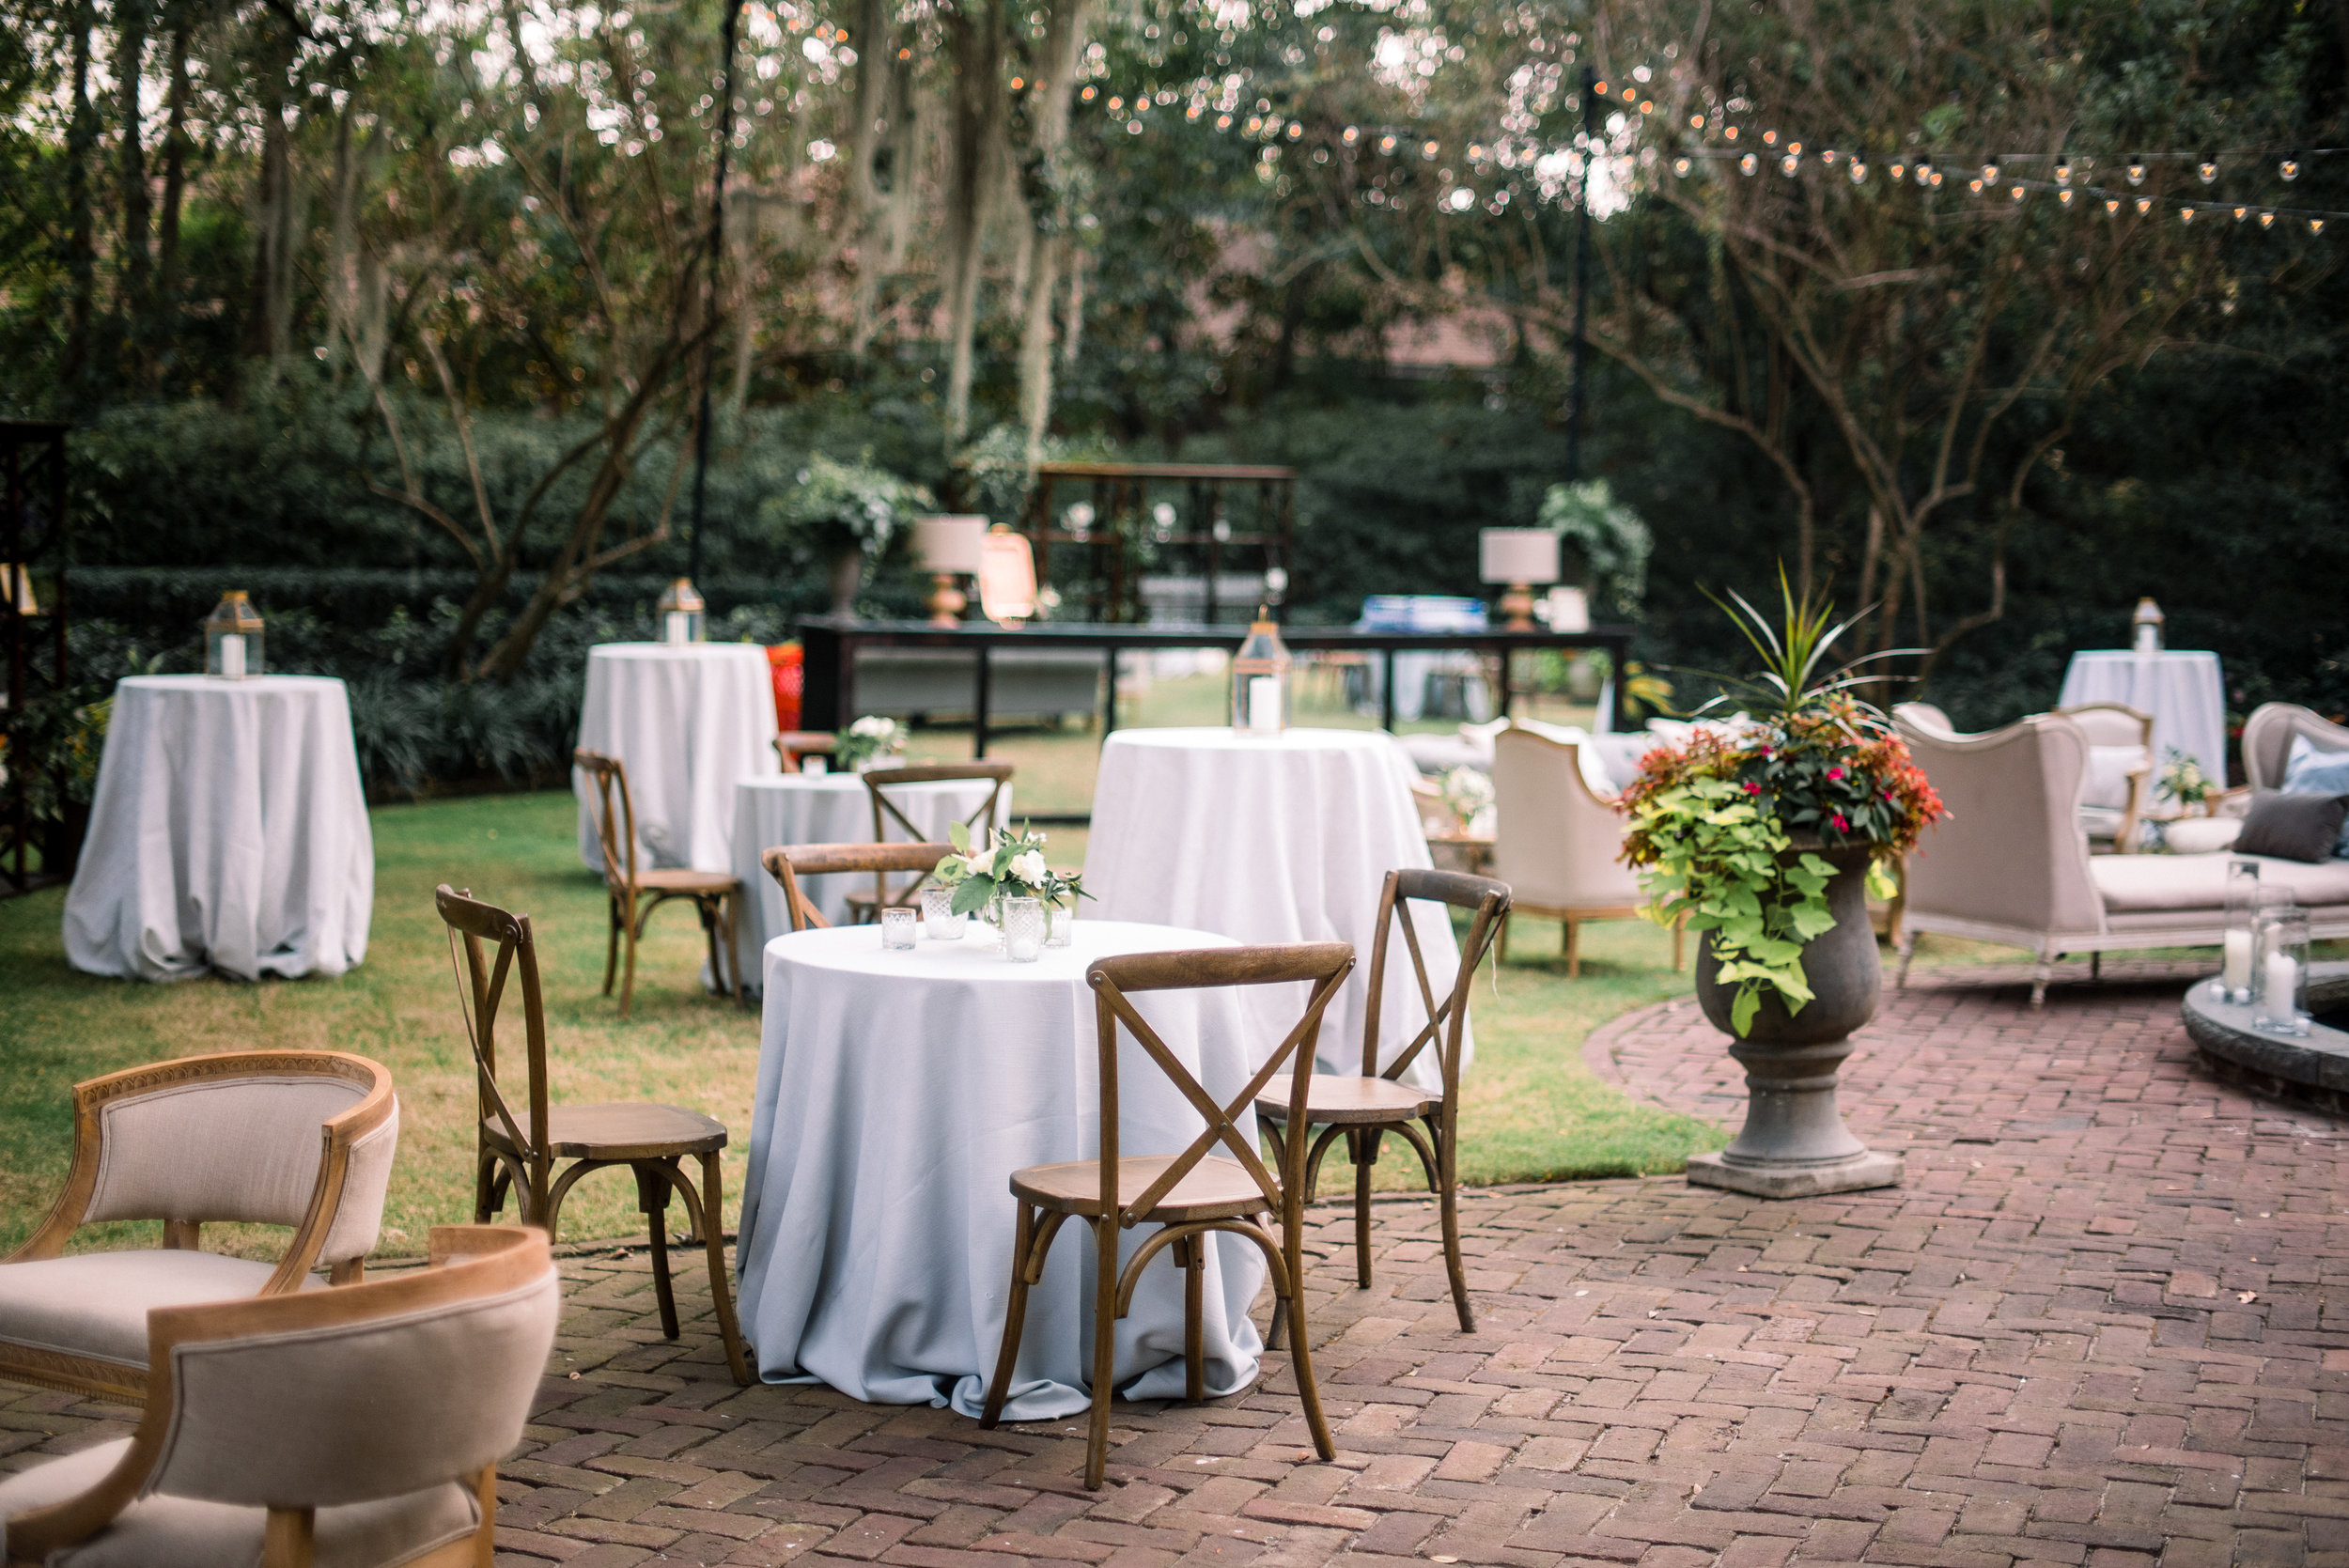 Outdoor wedding reception at The Thomas Bennett House designed by A Charleston Bride  //  A Lowcountry Wedding Magazine & Blog